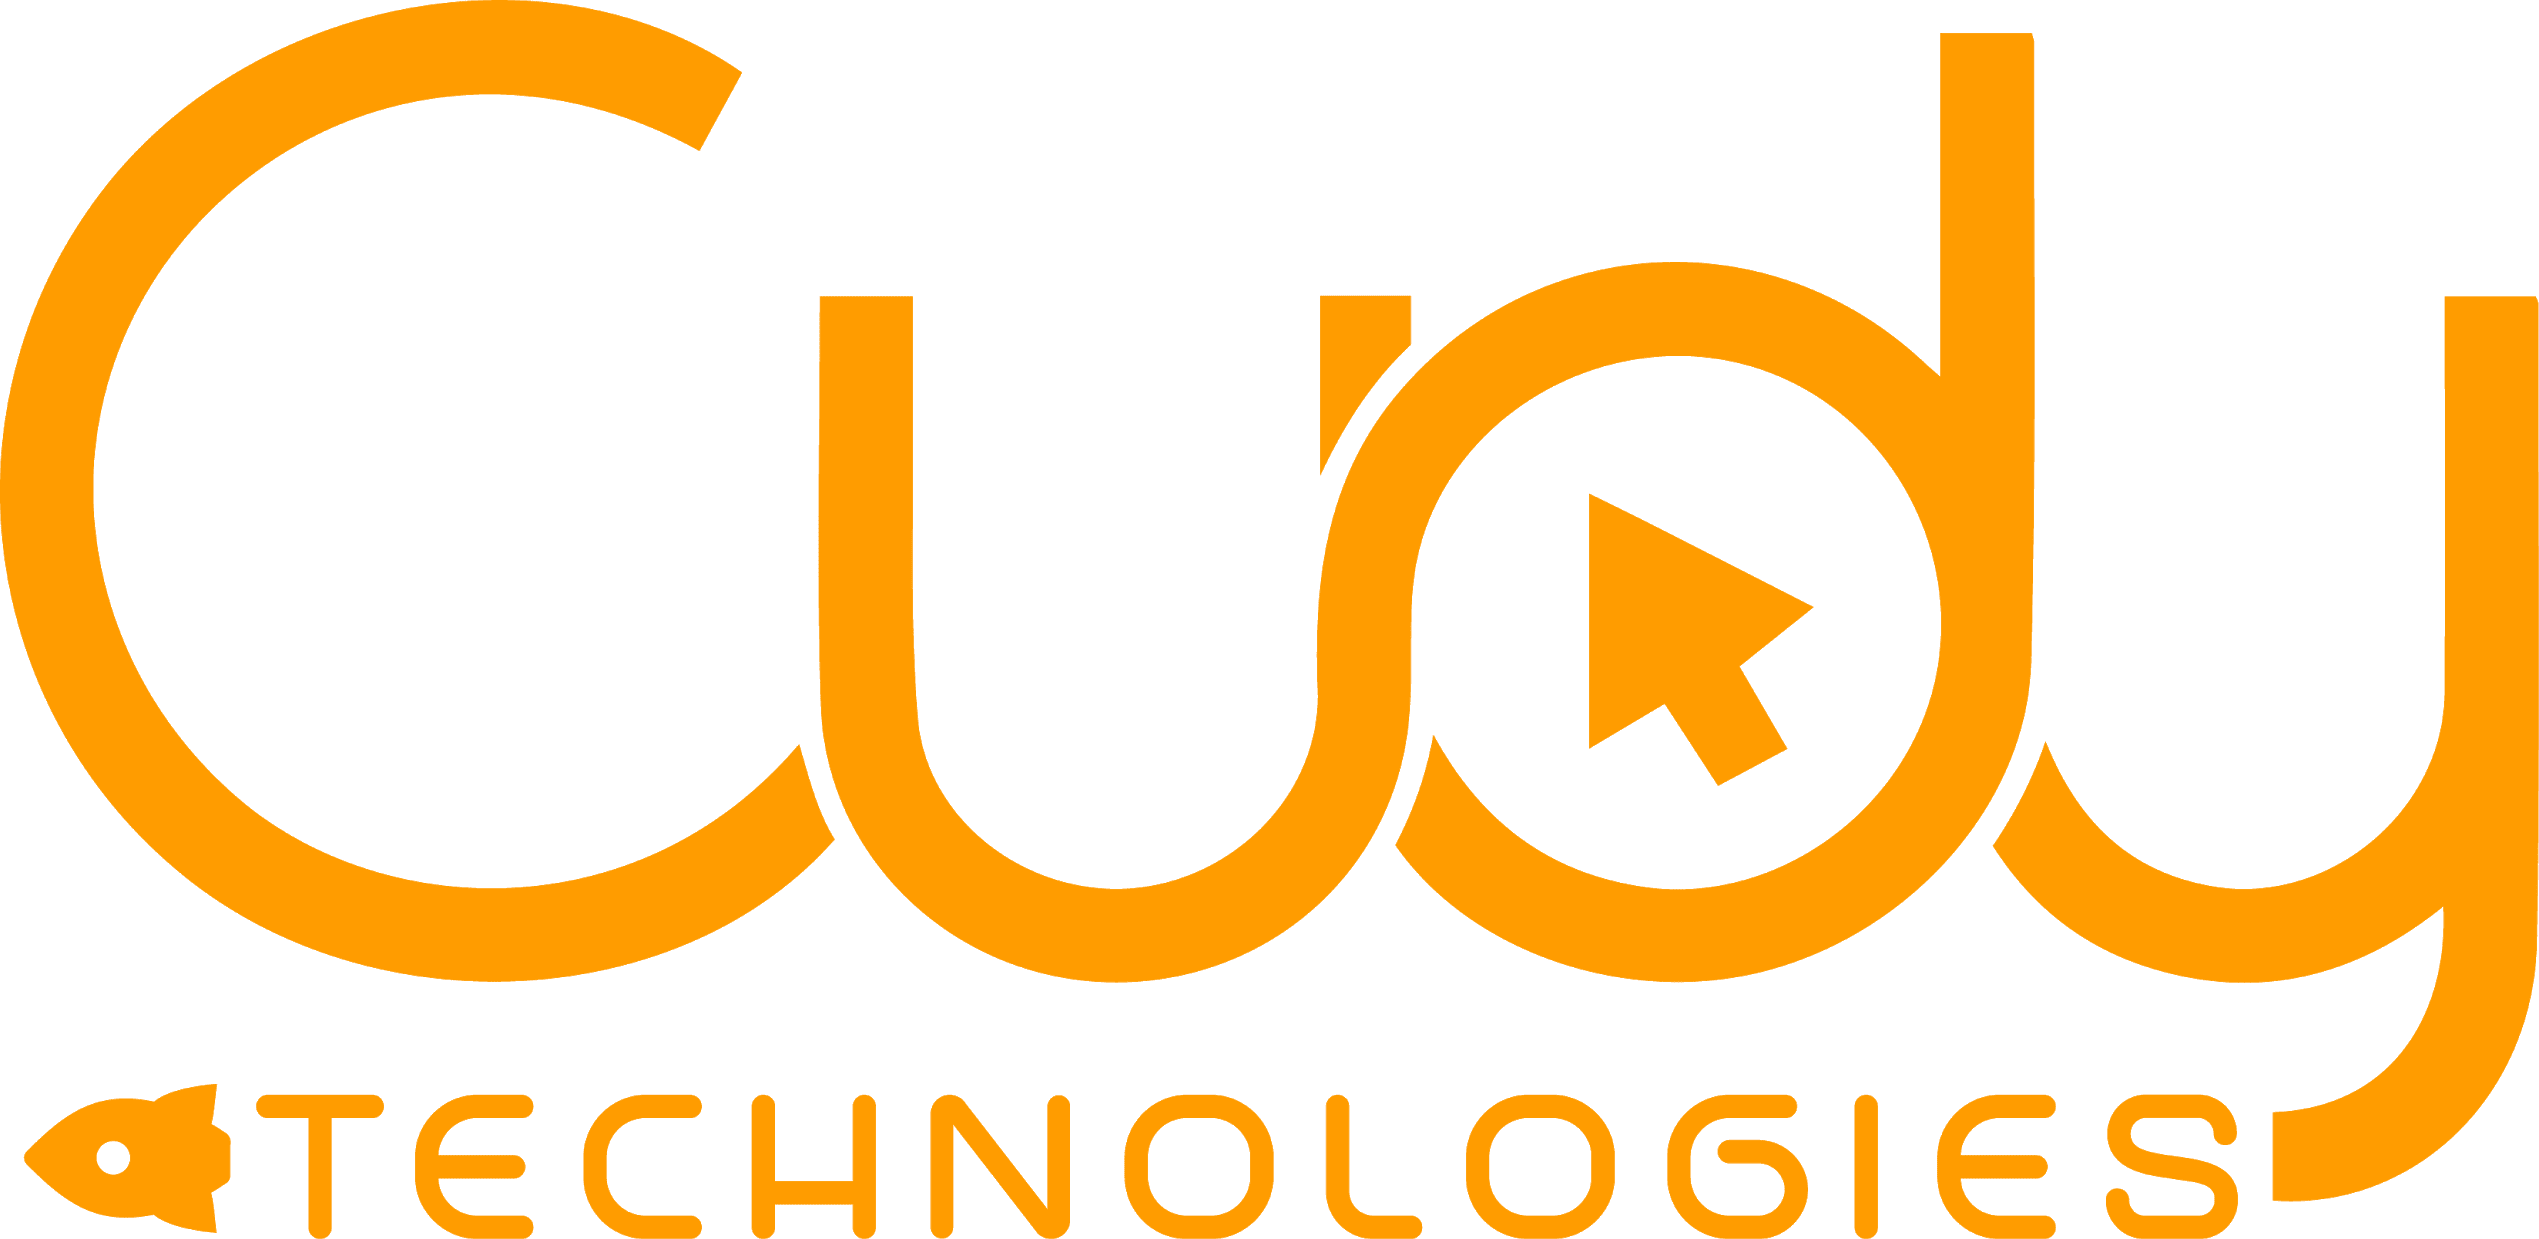 Lowongan Kerja Full Remote Online Marketing and Online User Acquisition (Cudy Pte. Ltd.)